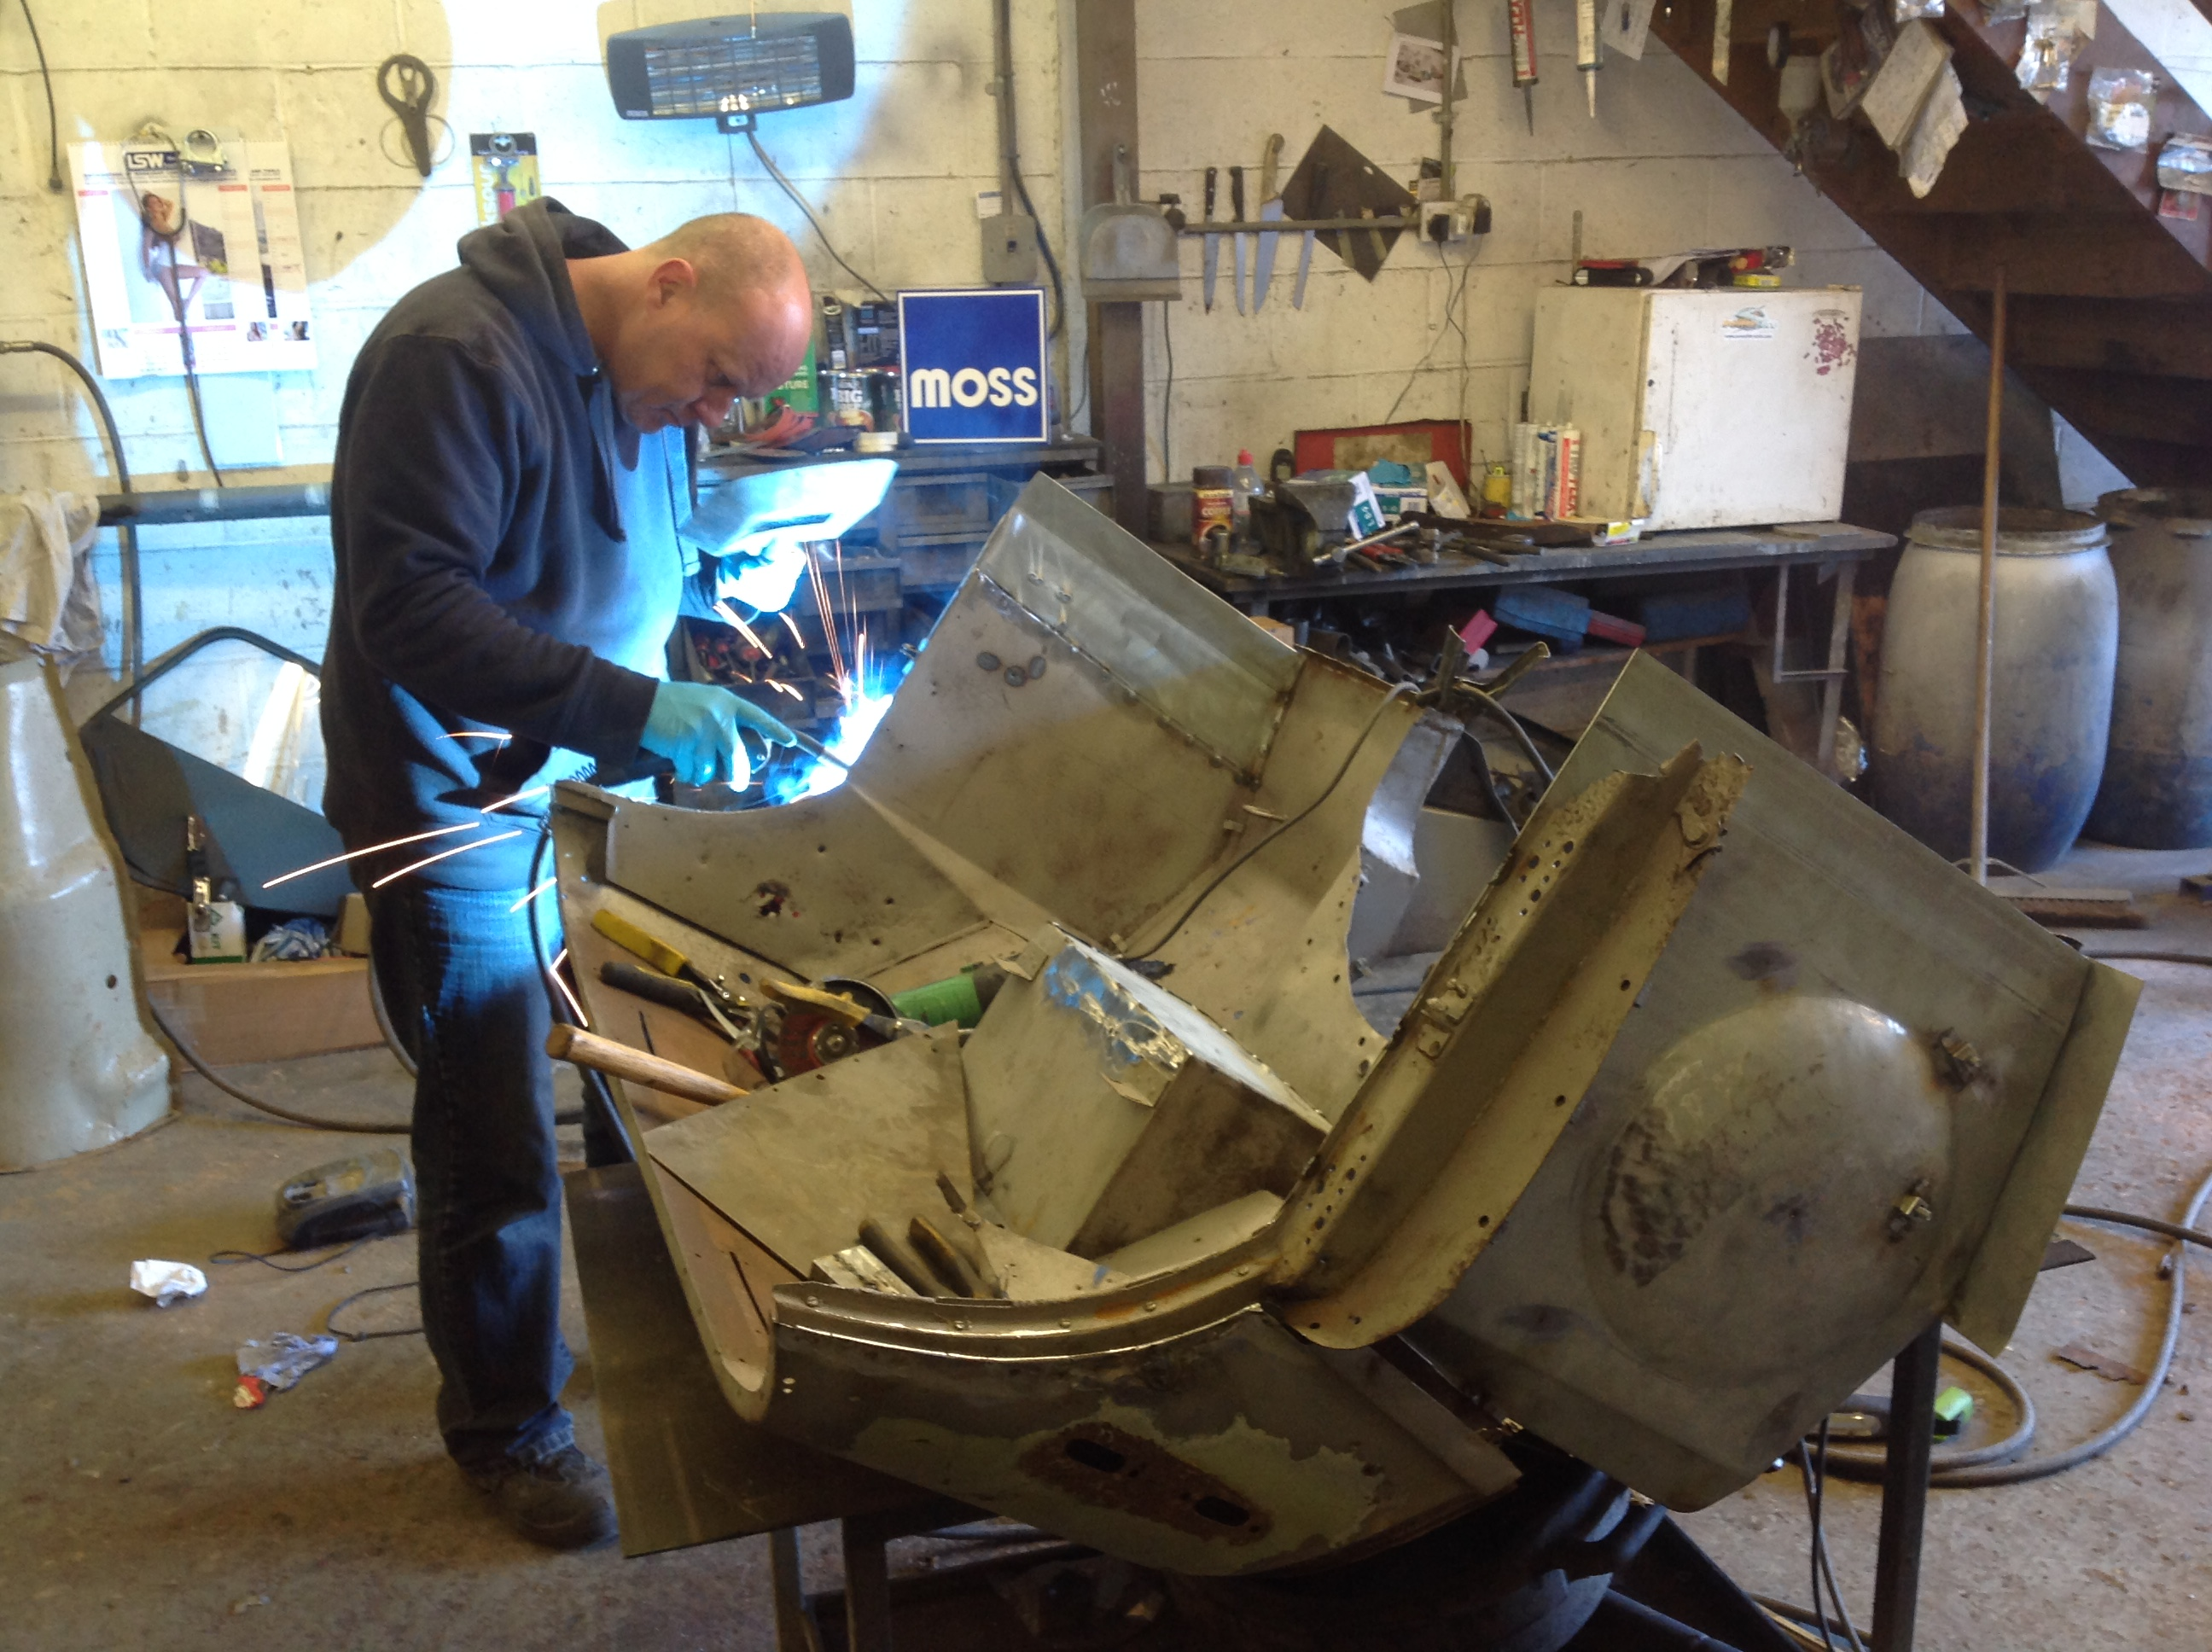 The TR2 under restoration